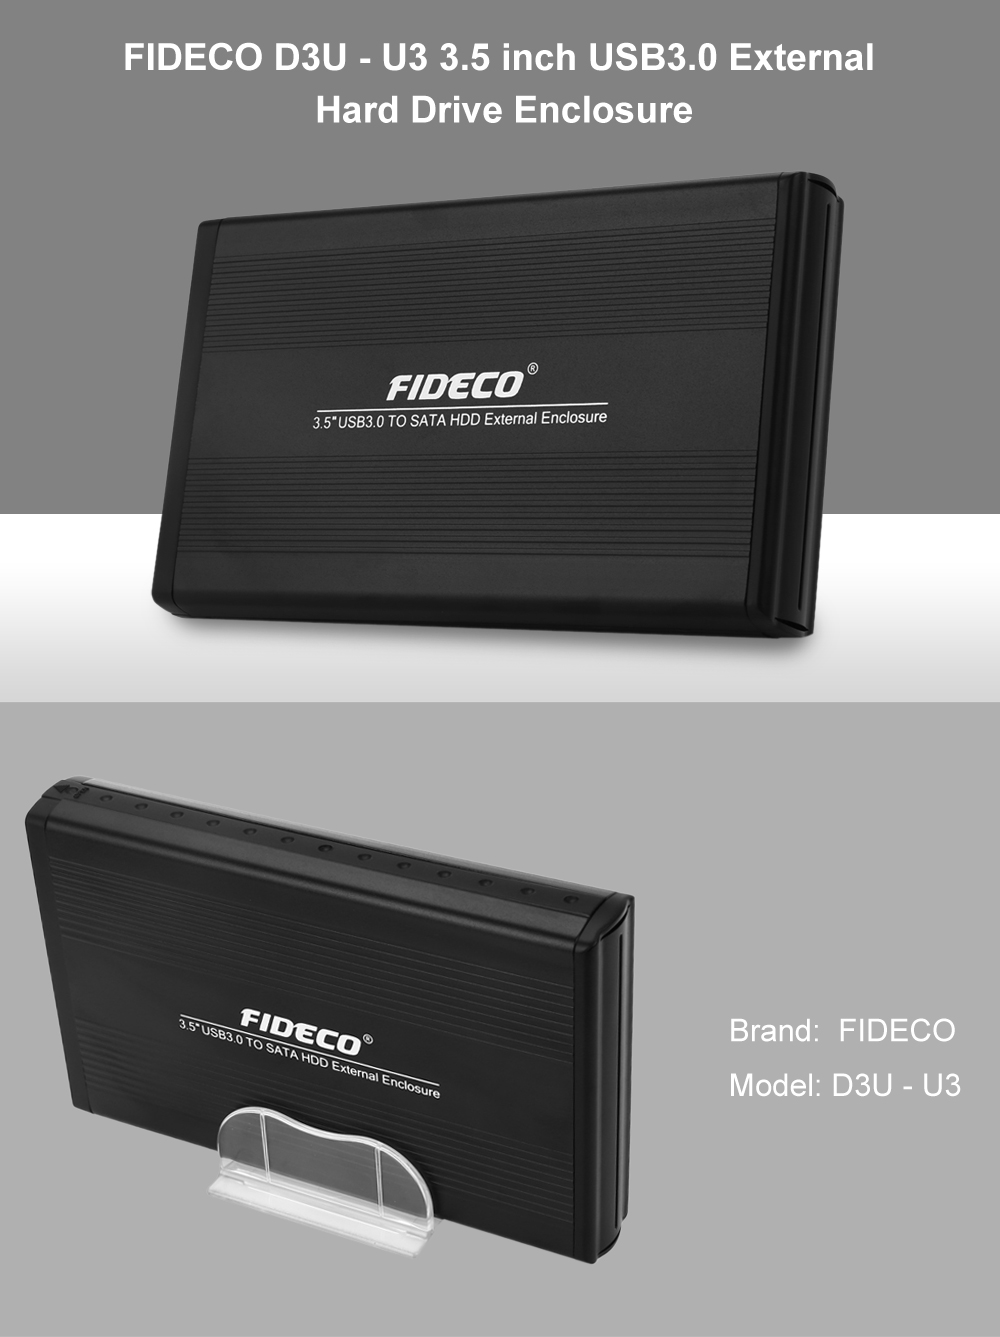 FIDECO D3U - U3 3.5 inch USB3.0 External Hard Drive Enclosure Compatible with USB 2.0 and USB 1.1